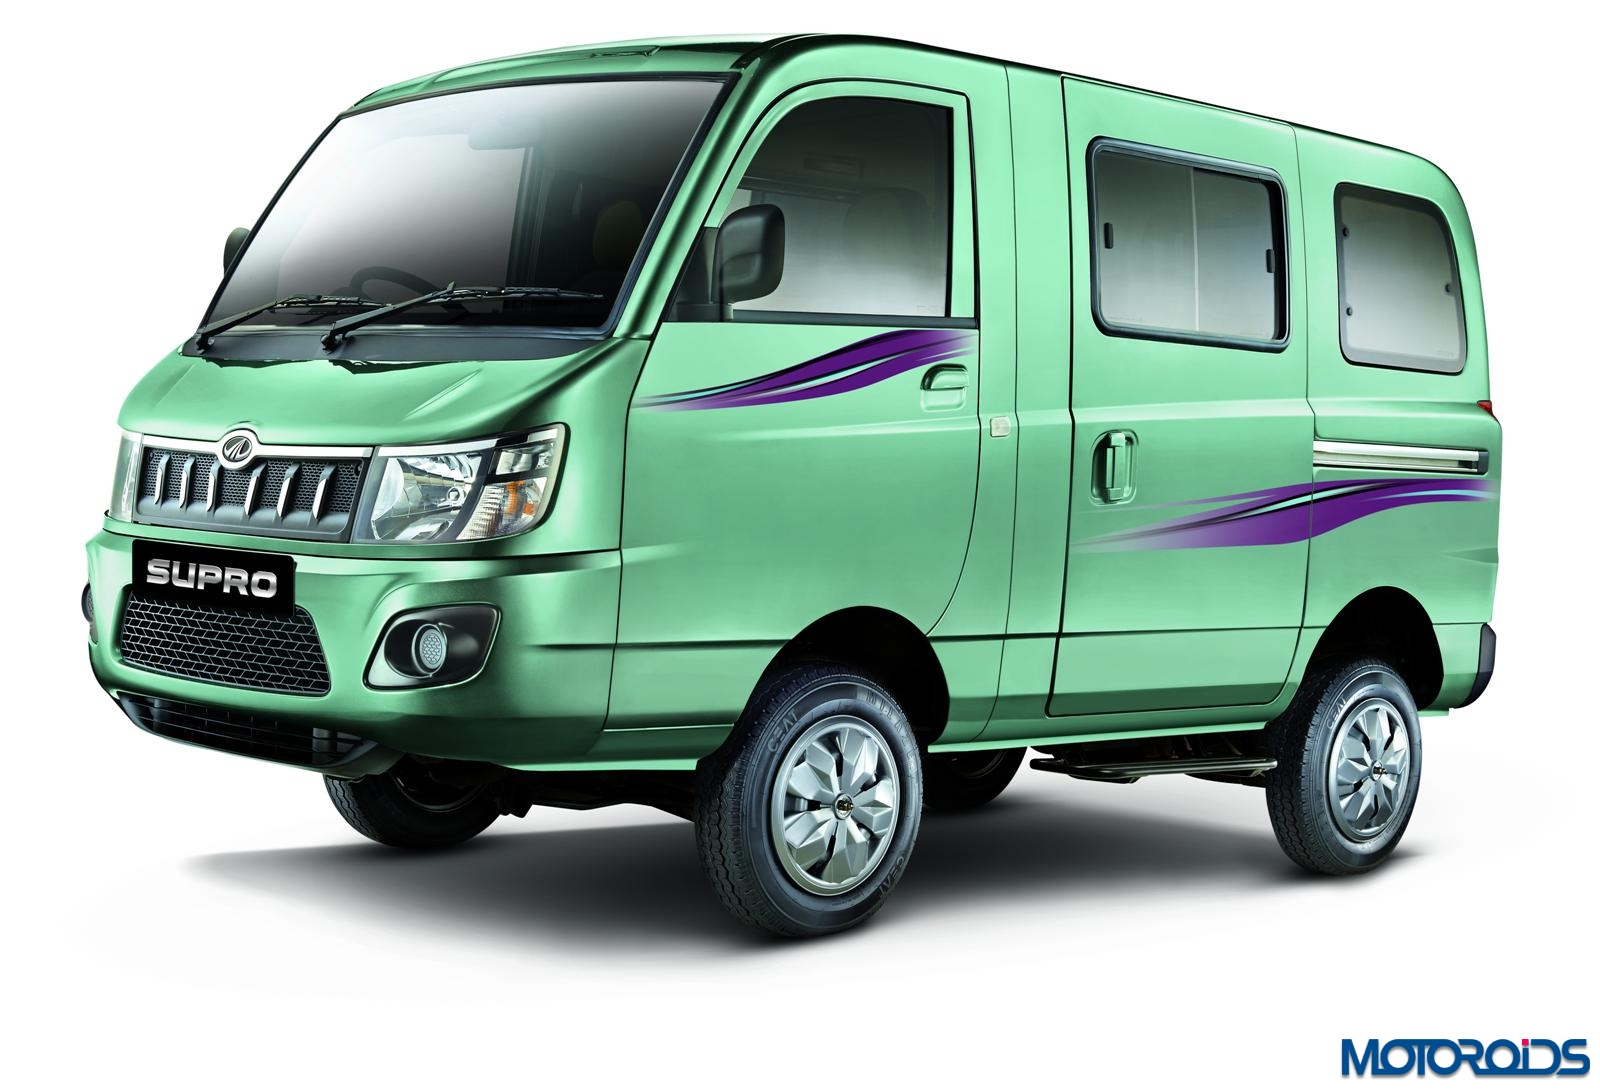 Mahindra Launches Supro Van And Minitruck For Rs 4 38 4